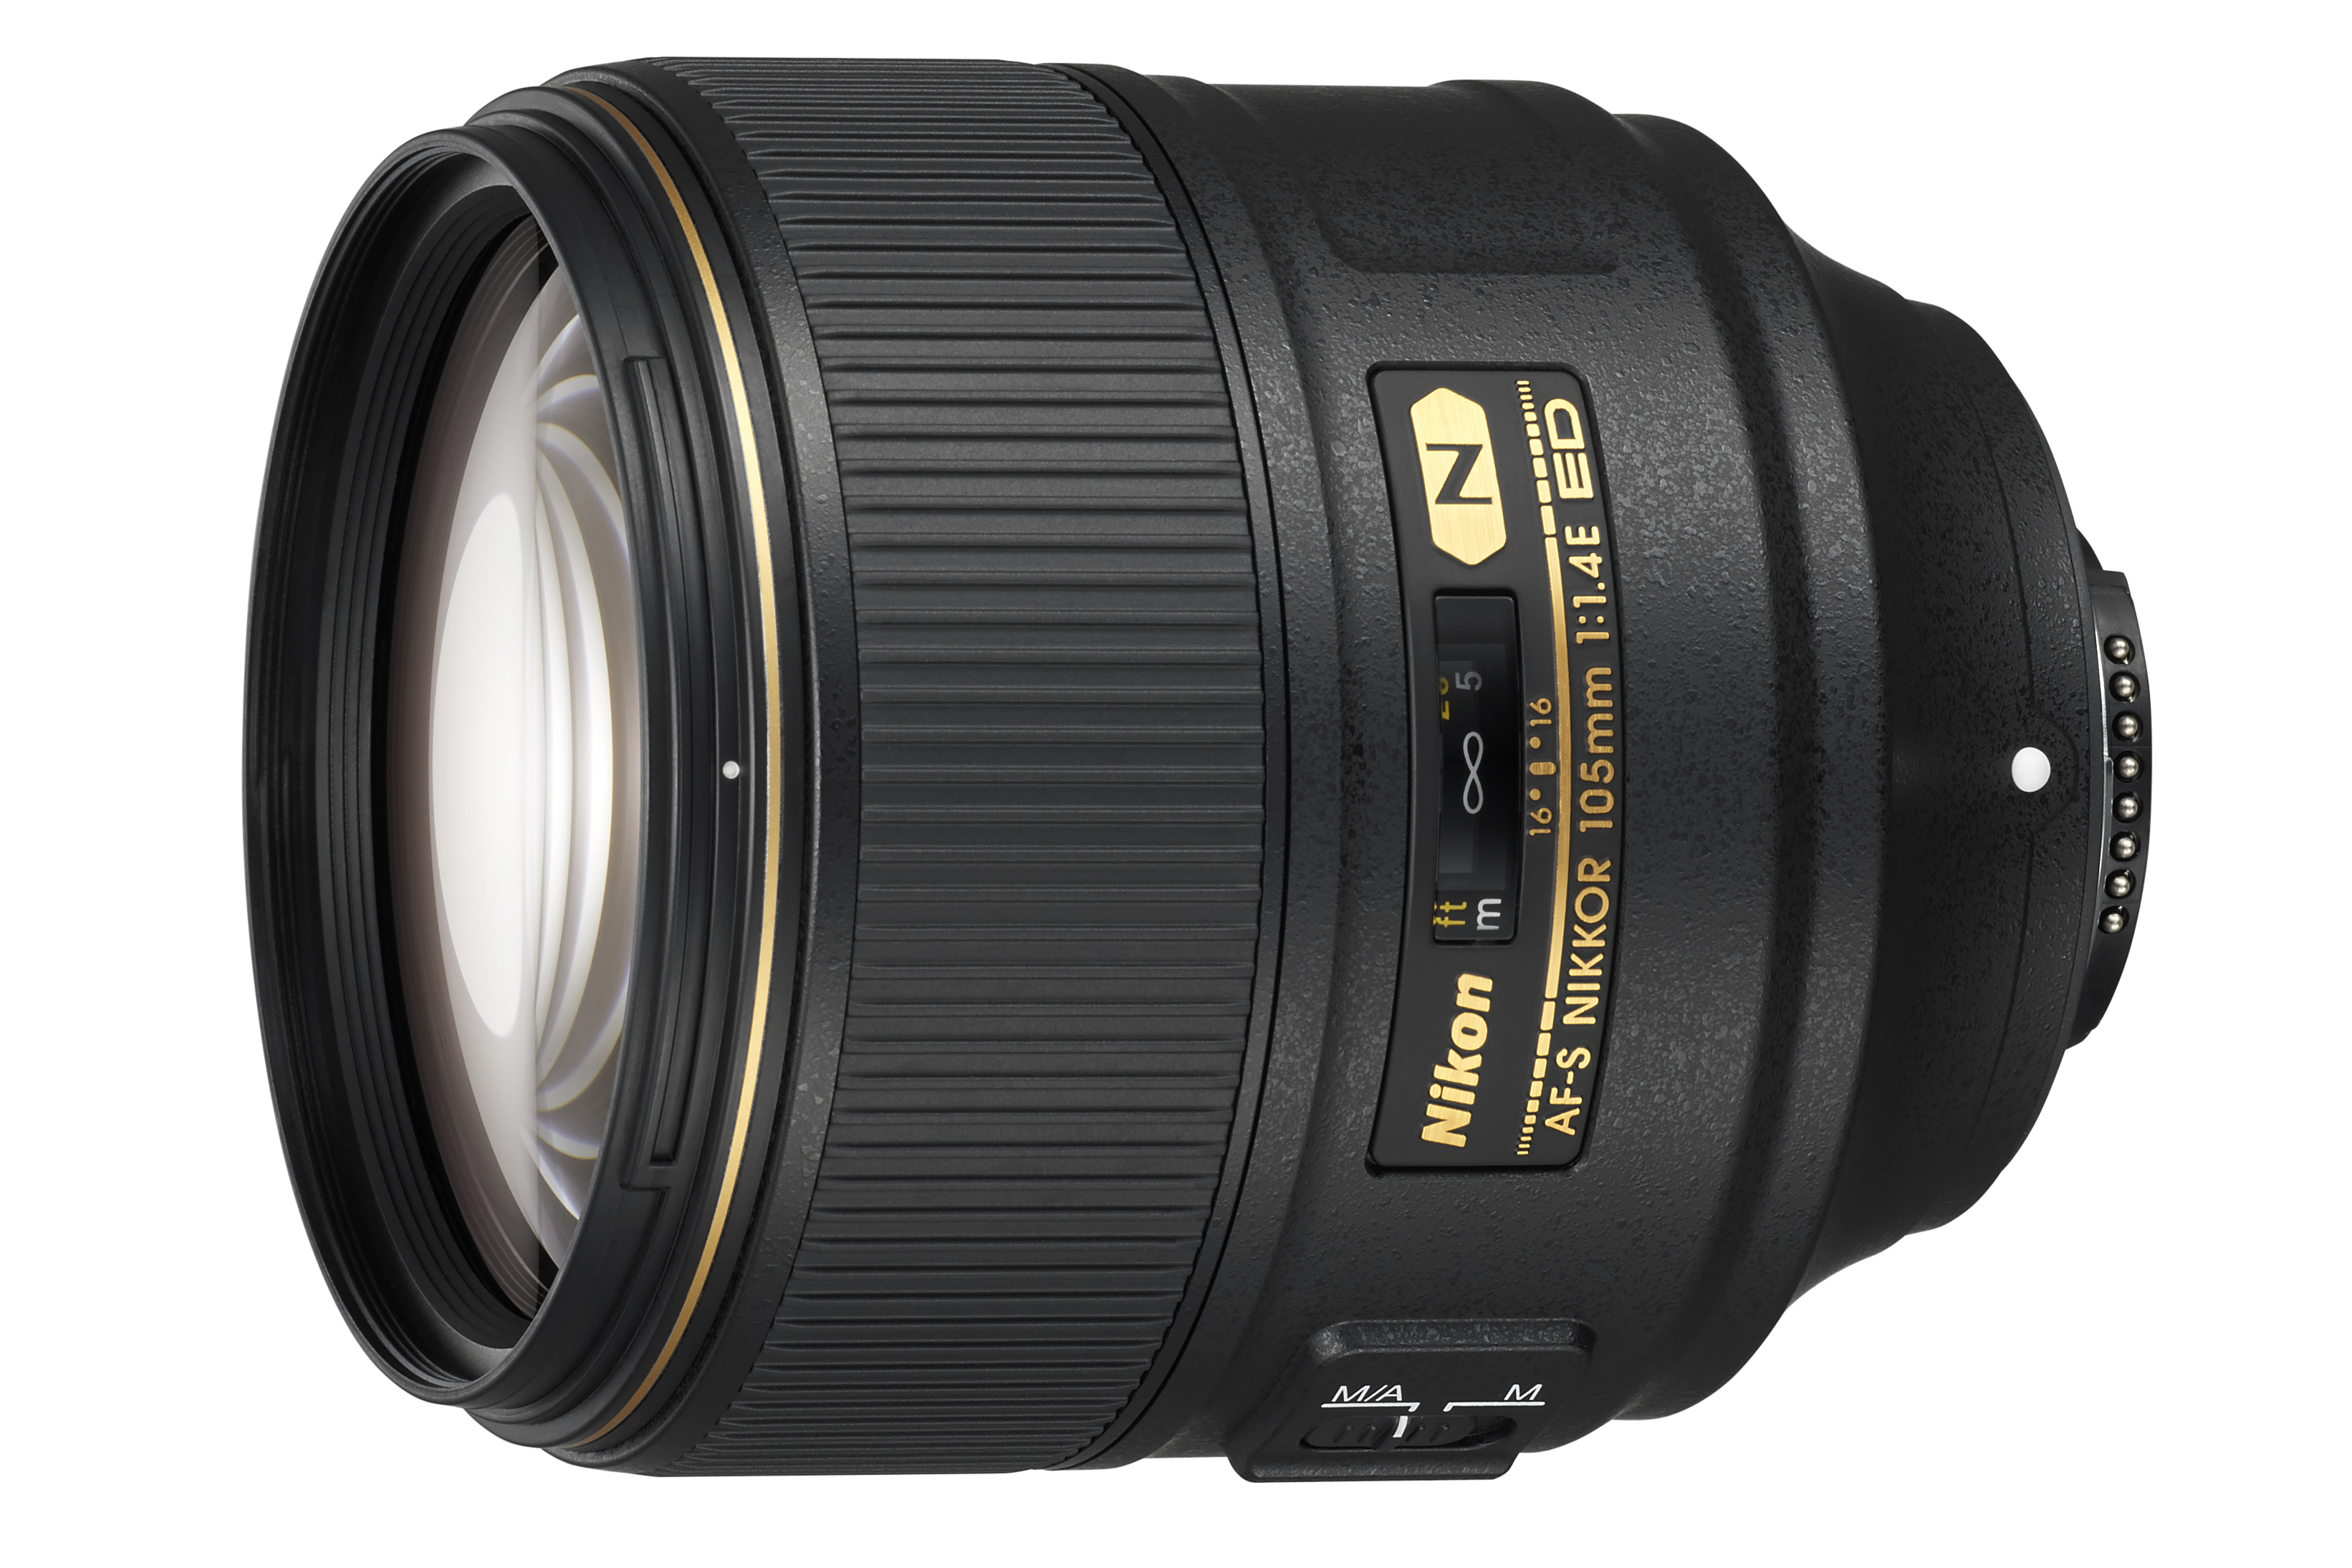 Nikon Introduces World\'s First Full-frame 105mm Lens with F/1.4 ...